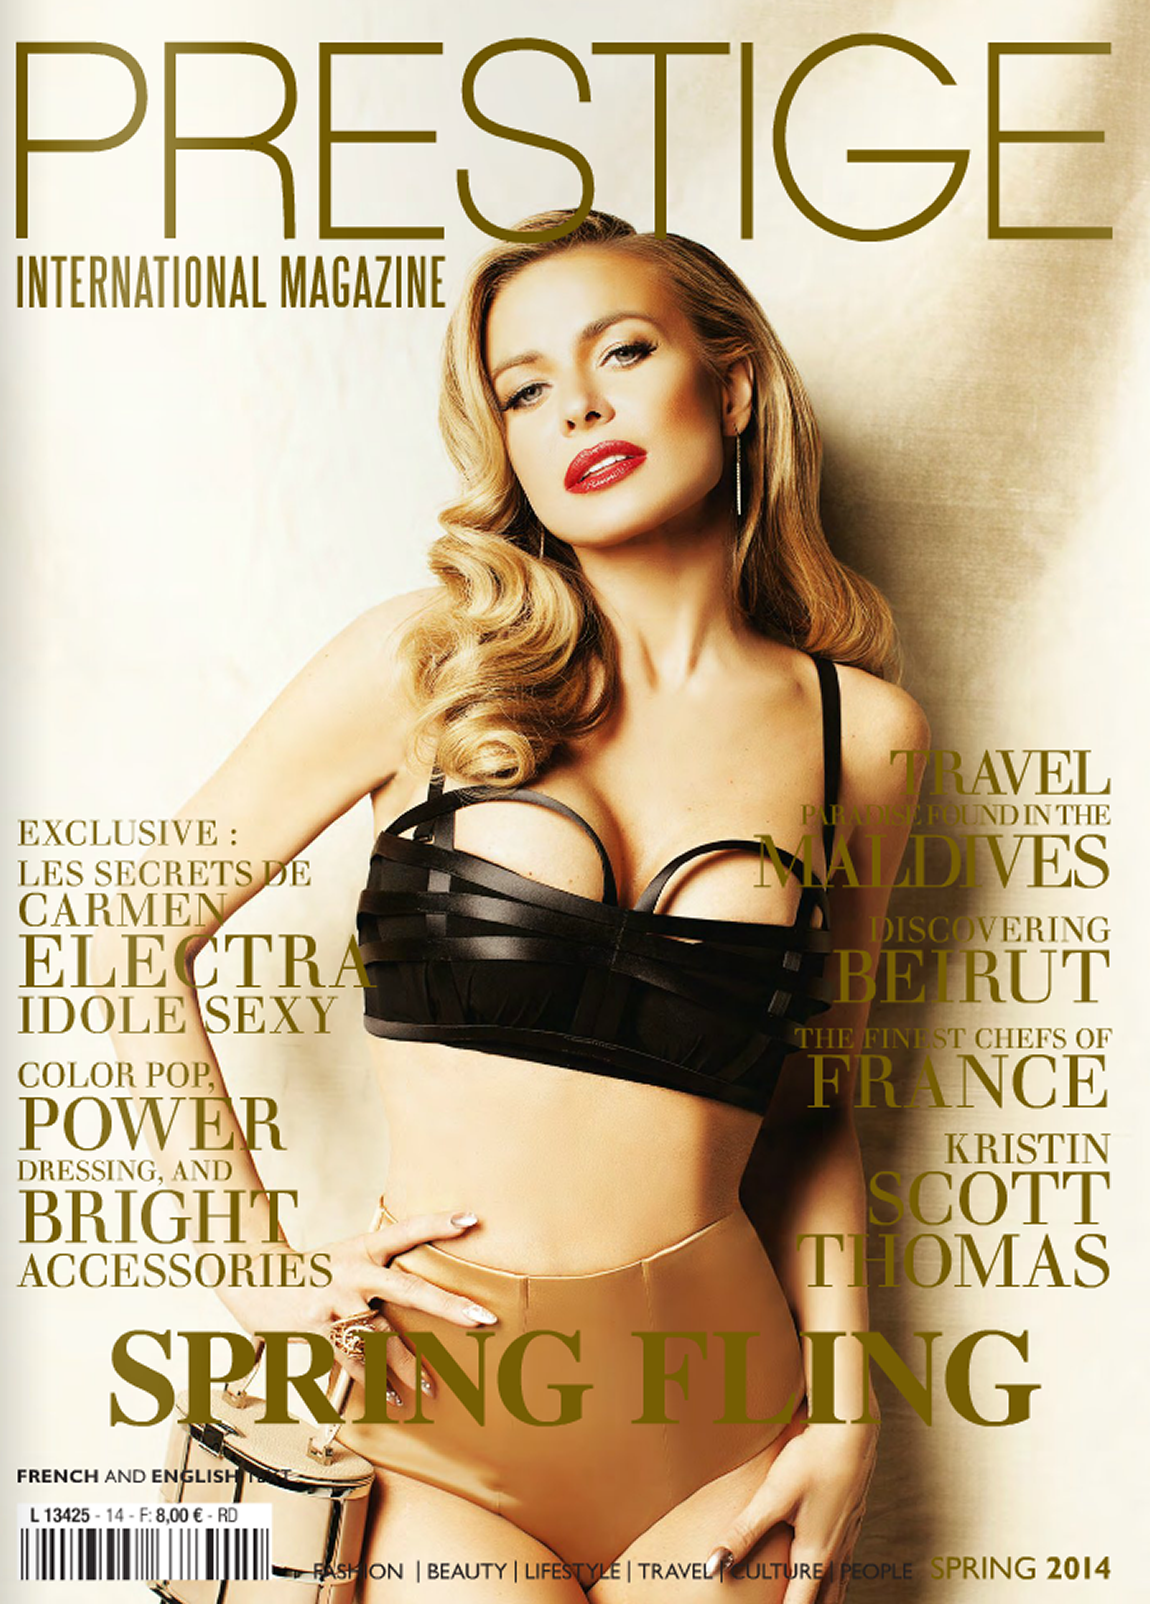 Translation of the magazine Prestige International